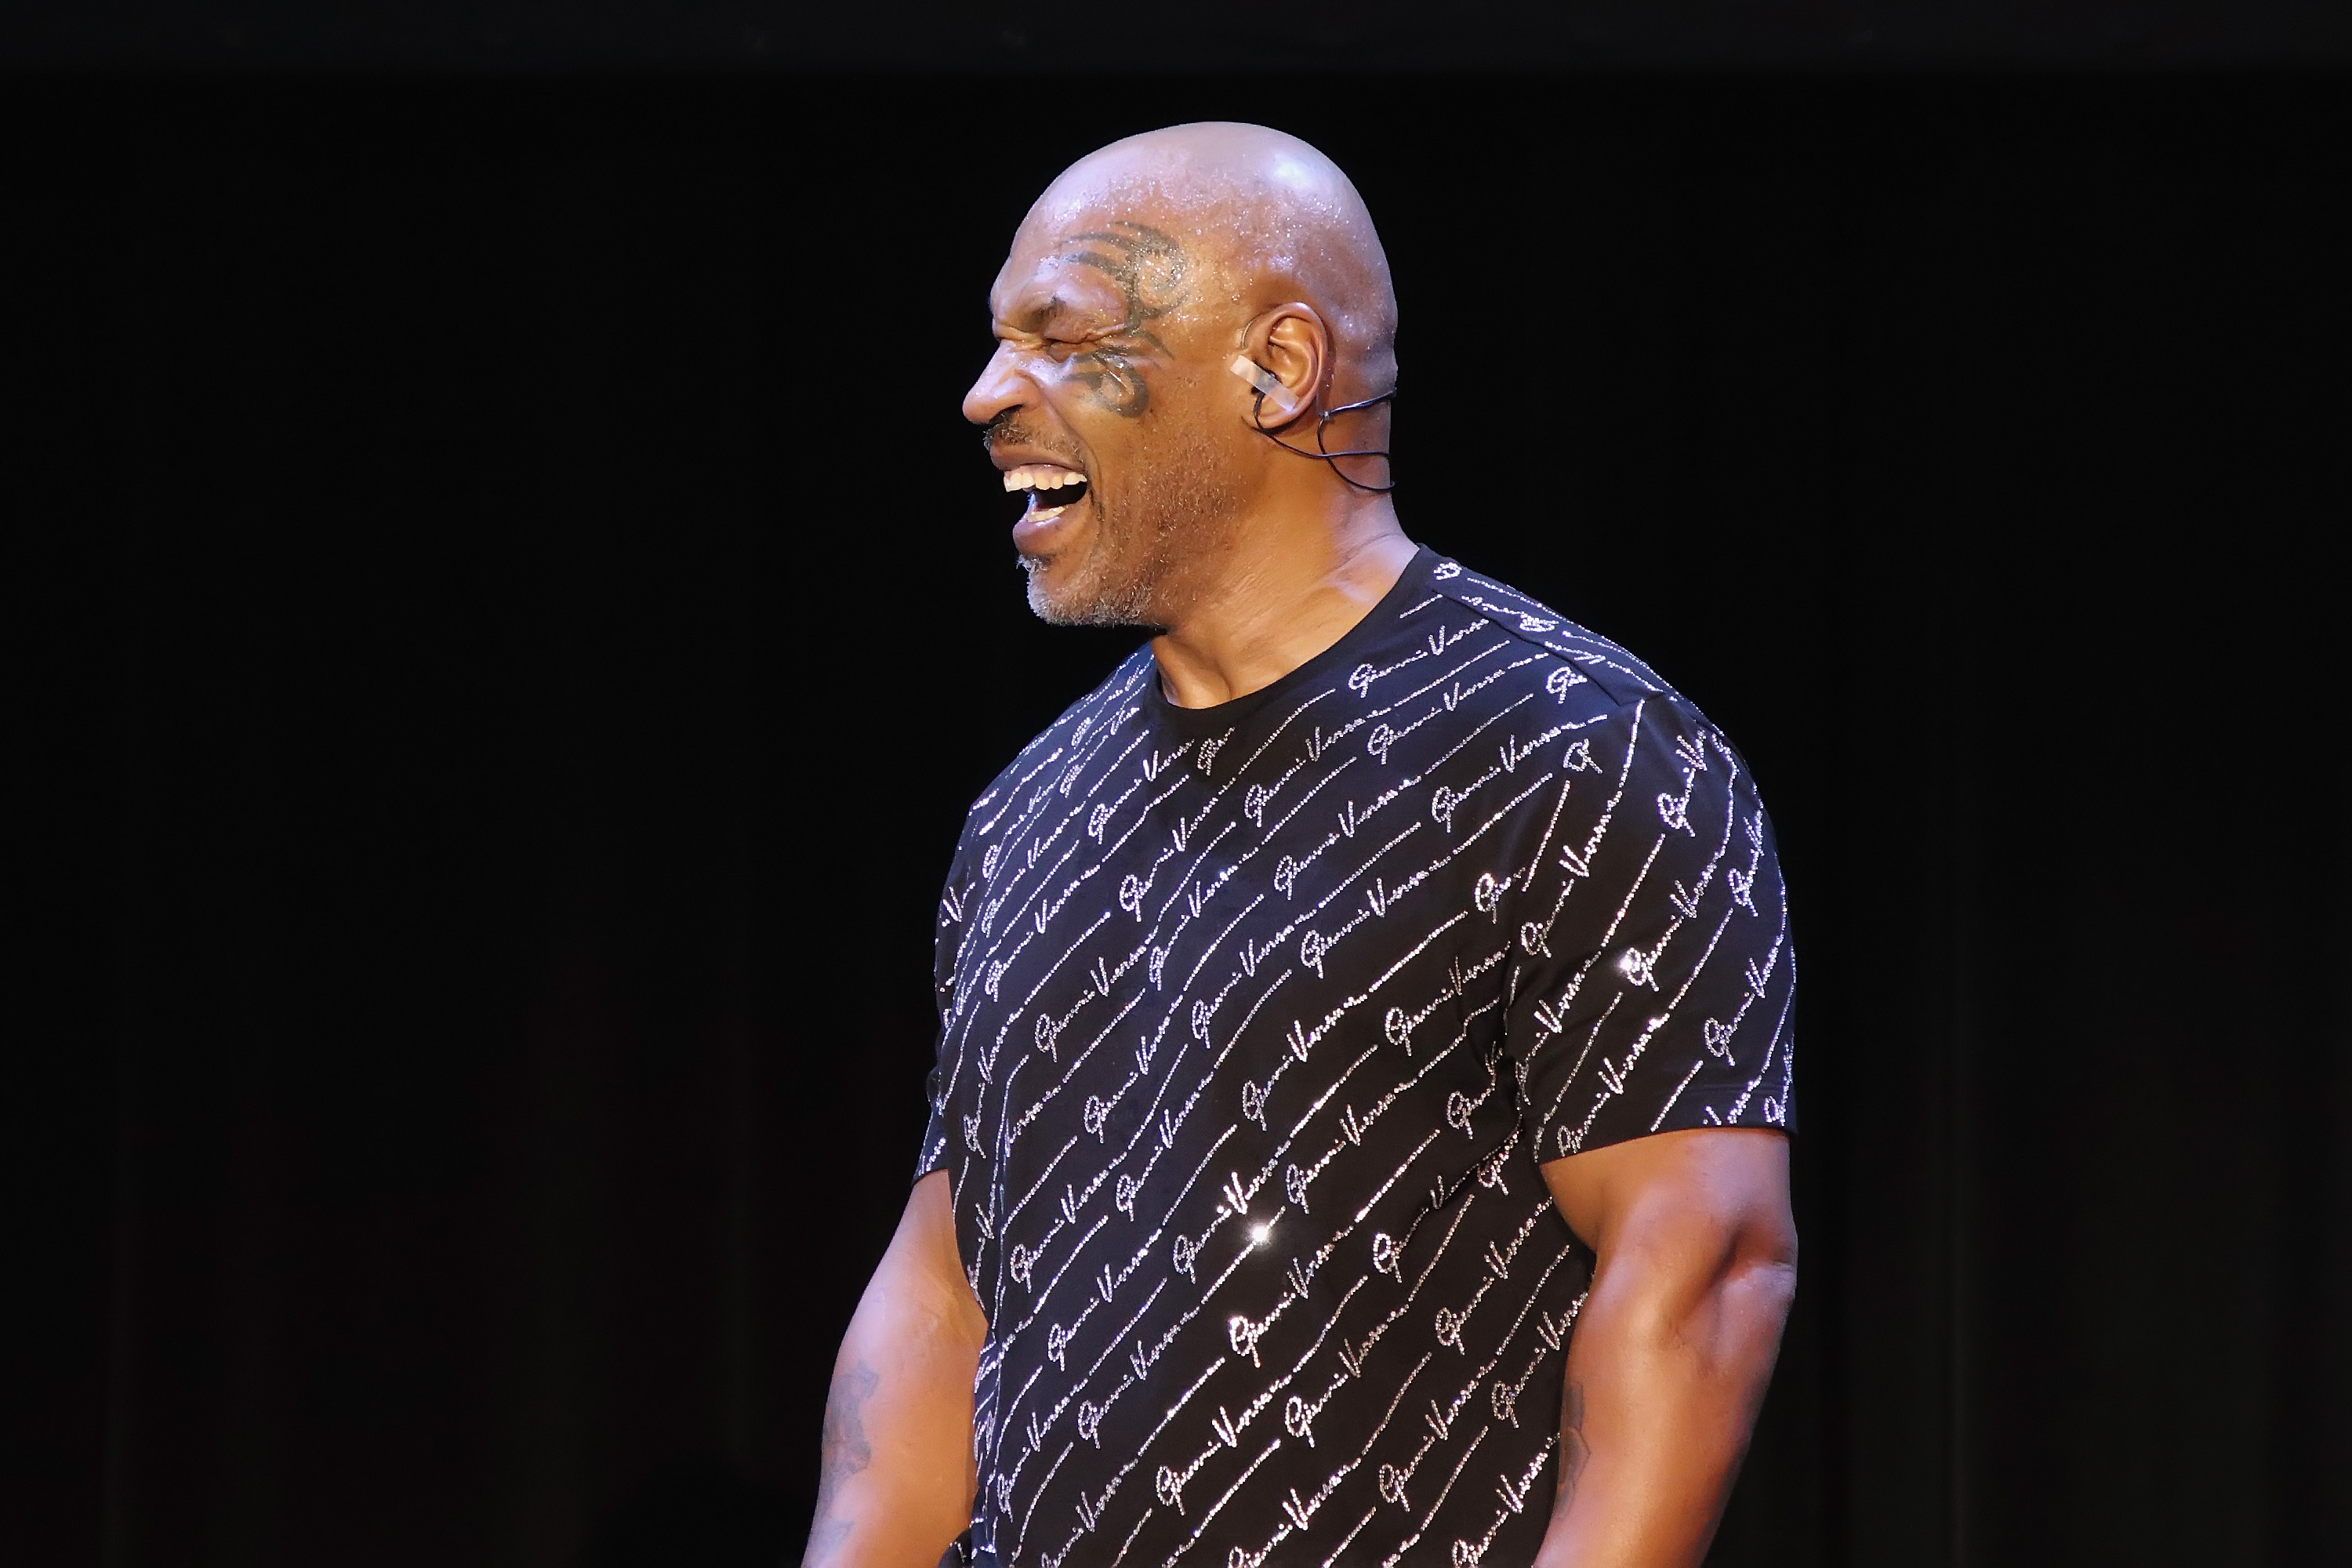 Mike Tyson has someone ready to jump in the rin if Roy Jones Jr. bails out.